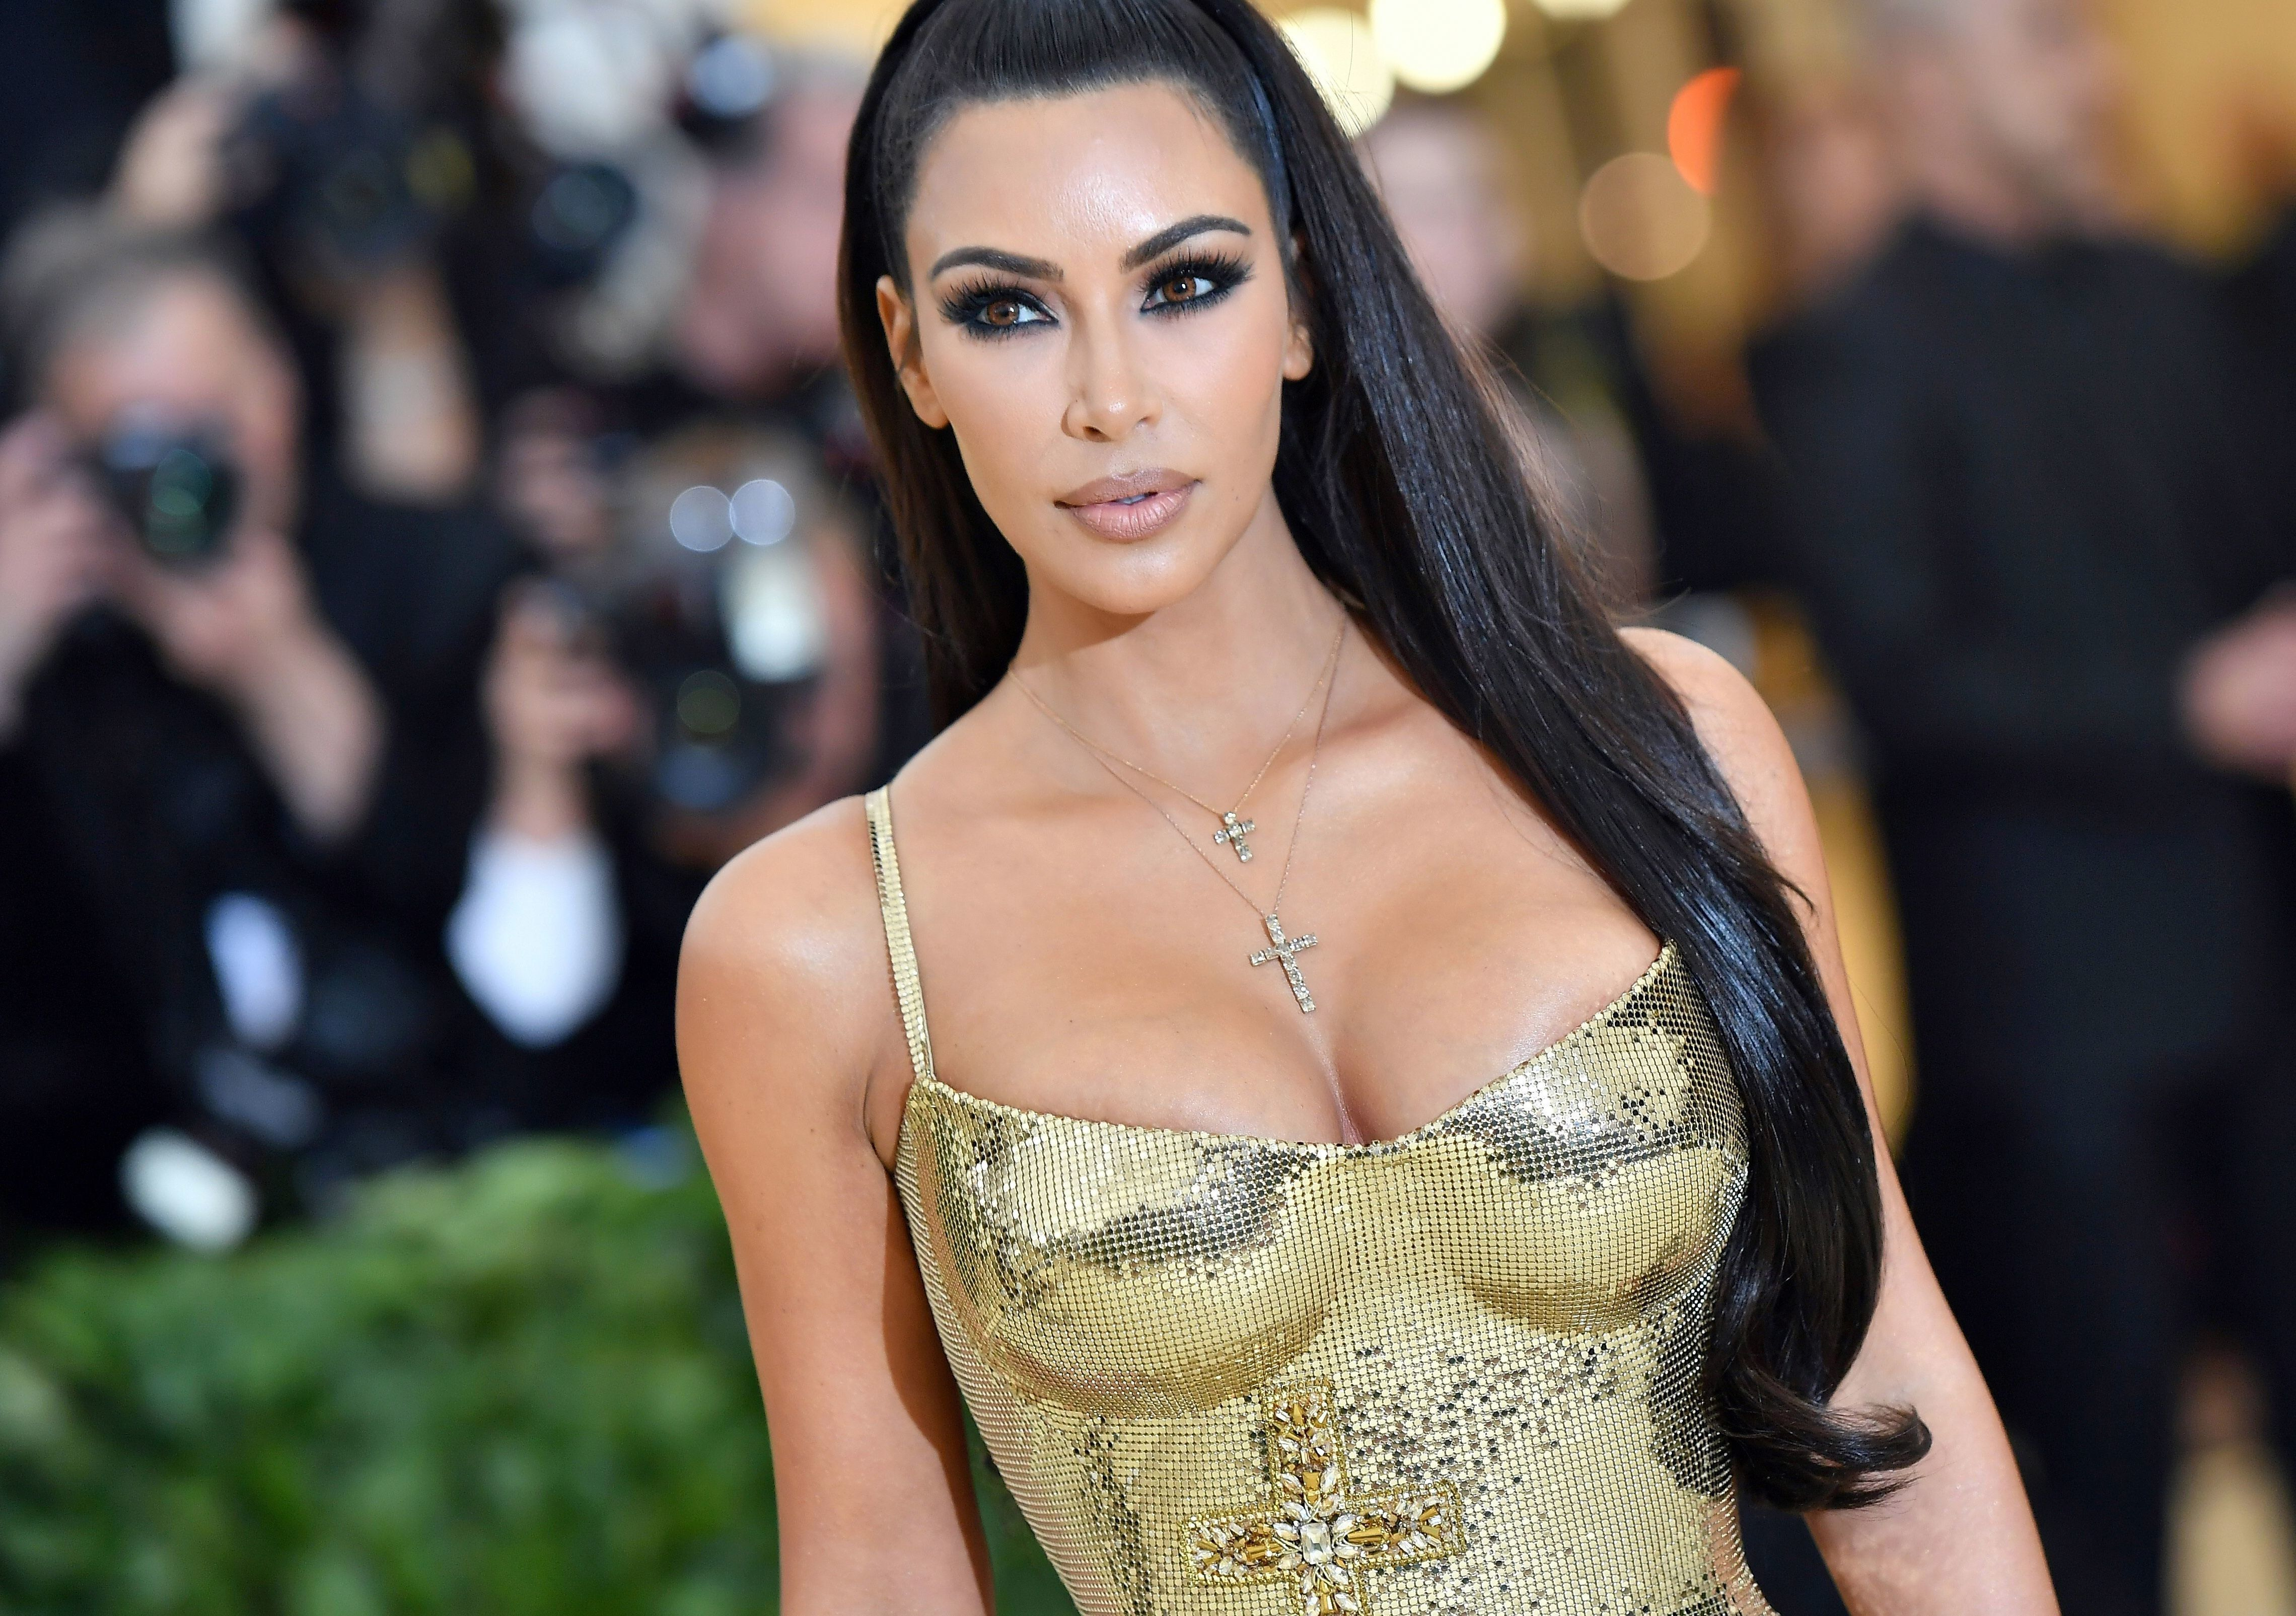 Kim Kardashian arrives for the 2018 Met Gala on May 7, 2018, at the Metropolitan Museum of Art in New York. - The Gala raises money for the Metropolitan Museum of Arts Costume Institute. The Gala's 2018 theme is Heavenly Bodies: Fashion and the Catholic Imagination. (Photo by ANGELA WEISS / AFP)        (Photo credit should read ANGELA WEISS/AFP/Getty Images)